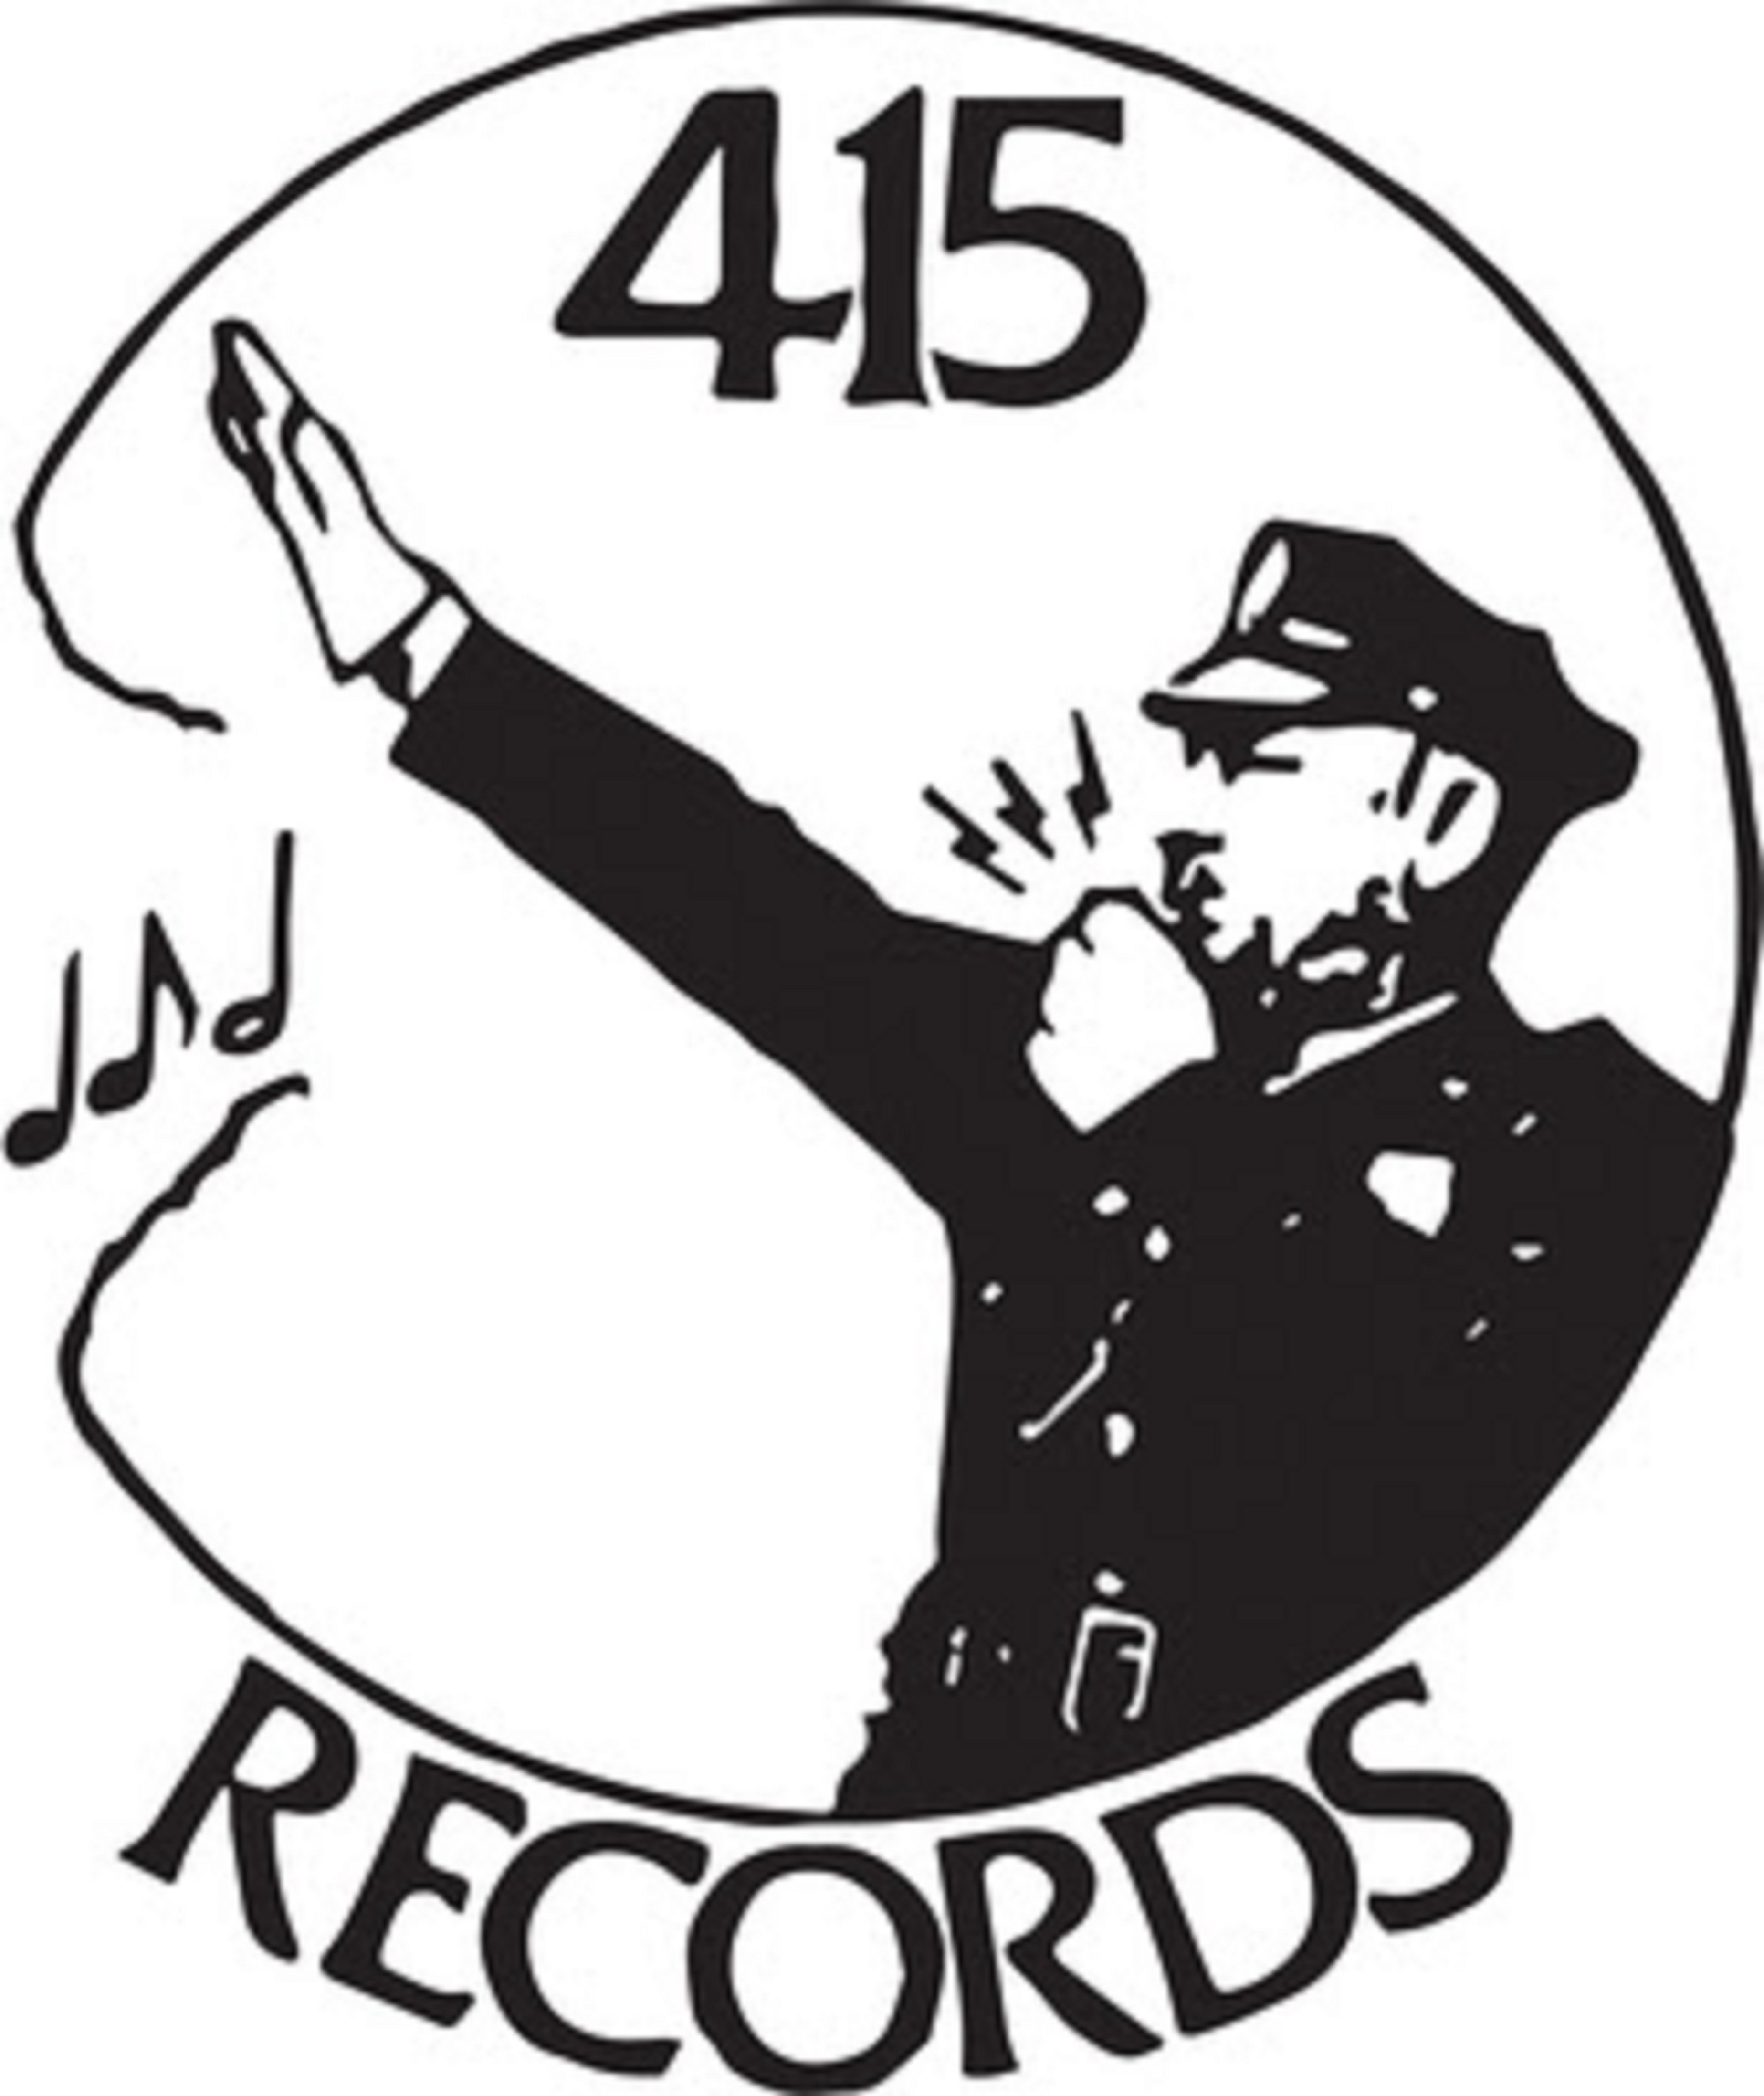 Liberation Hall To Launch 415 Records Reissue Series